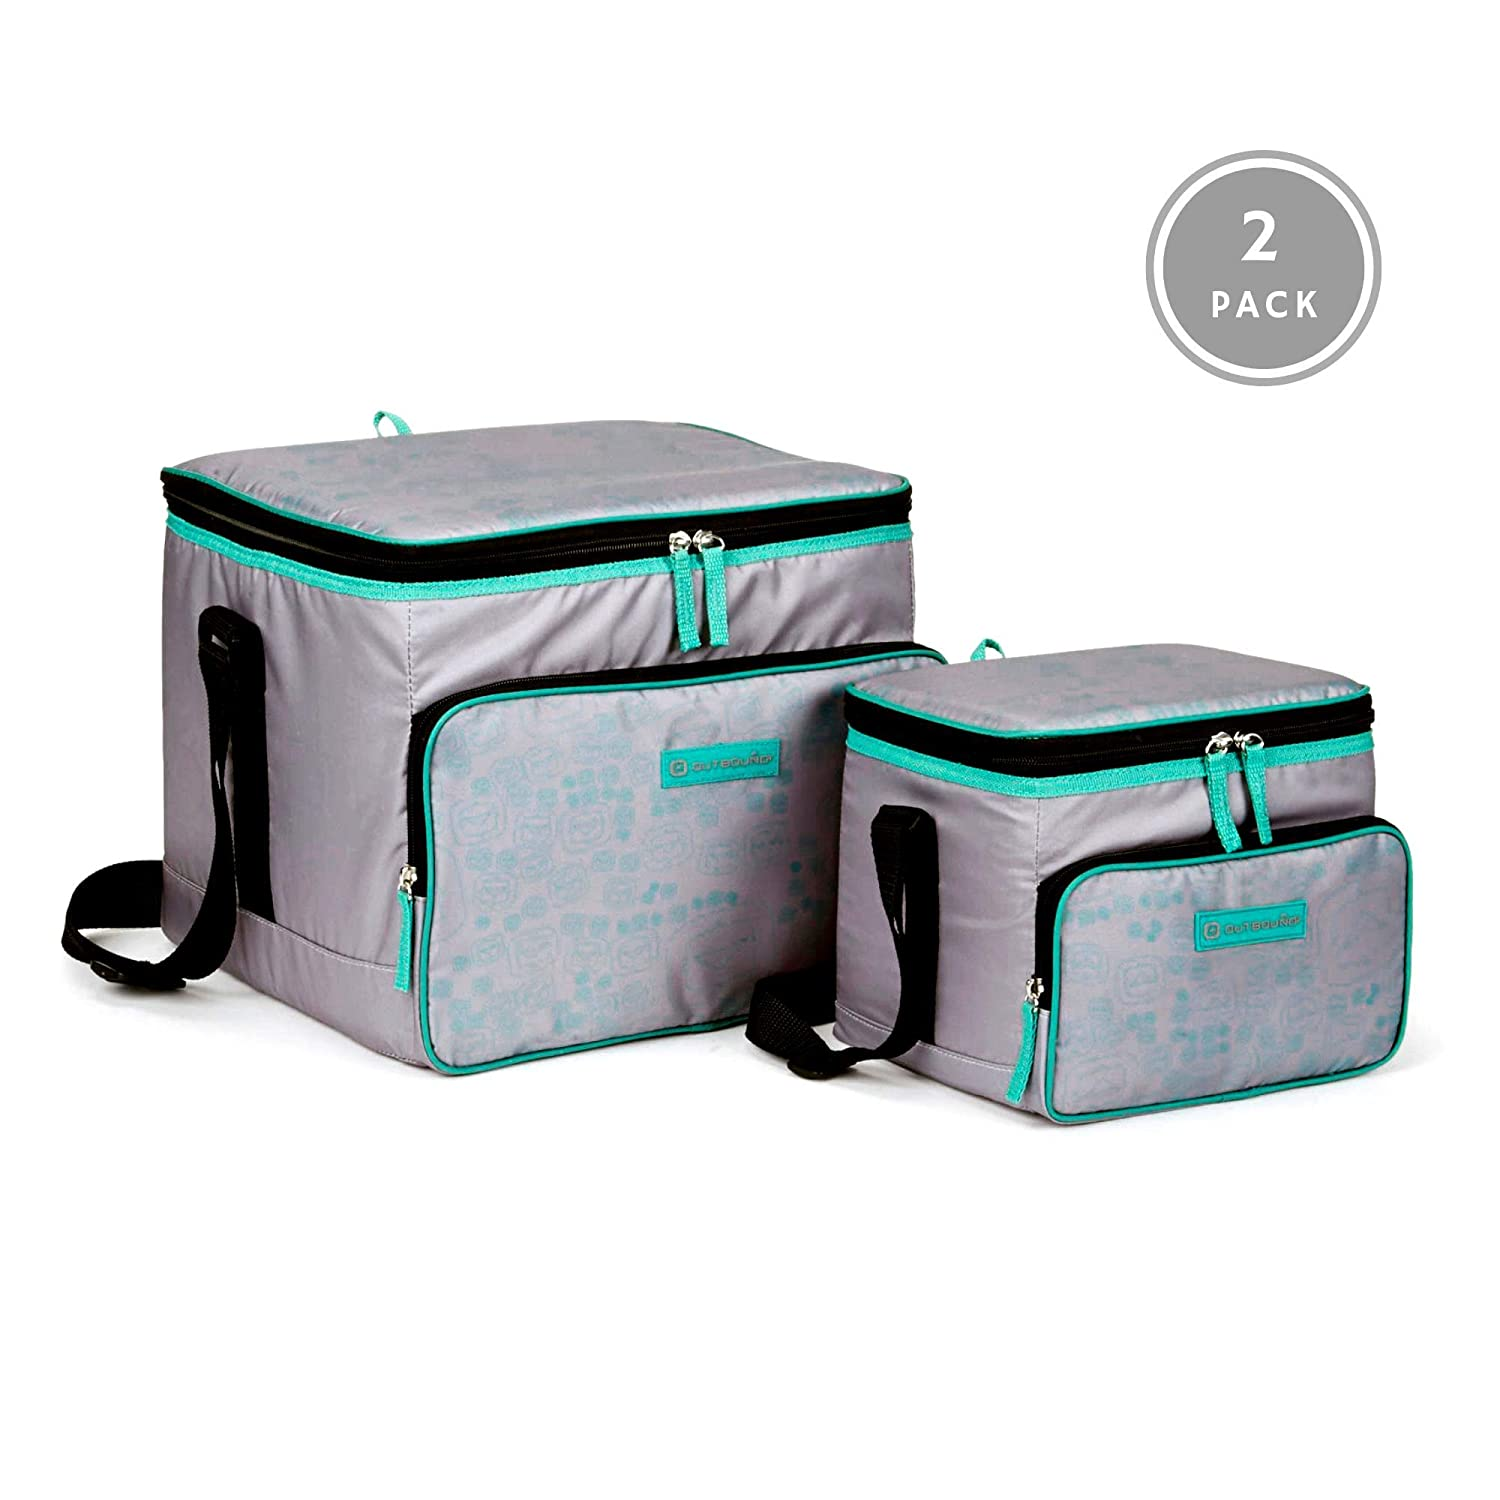 OUTBOUND Soft Cooler Portable 2-Piece Insulated Large 24 Can, and Small Lunch 6 Can Cooler for Beach, Camping, and Outdoors Collapsible, Gray